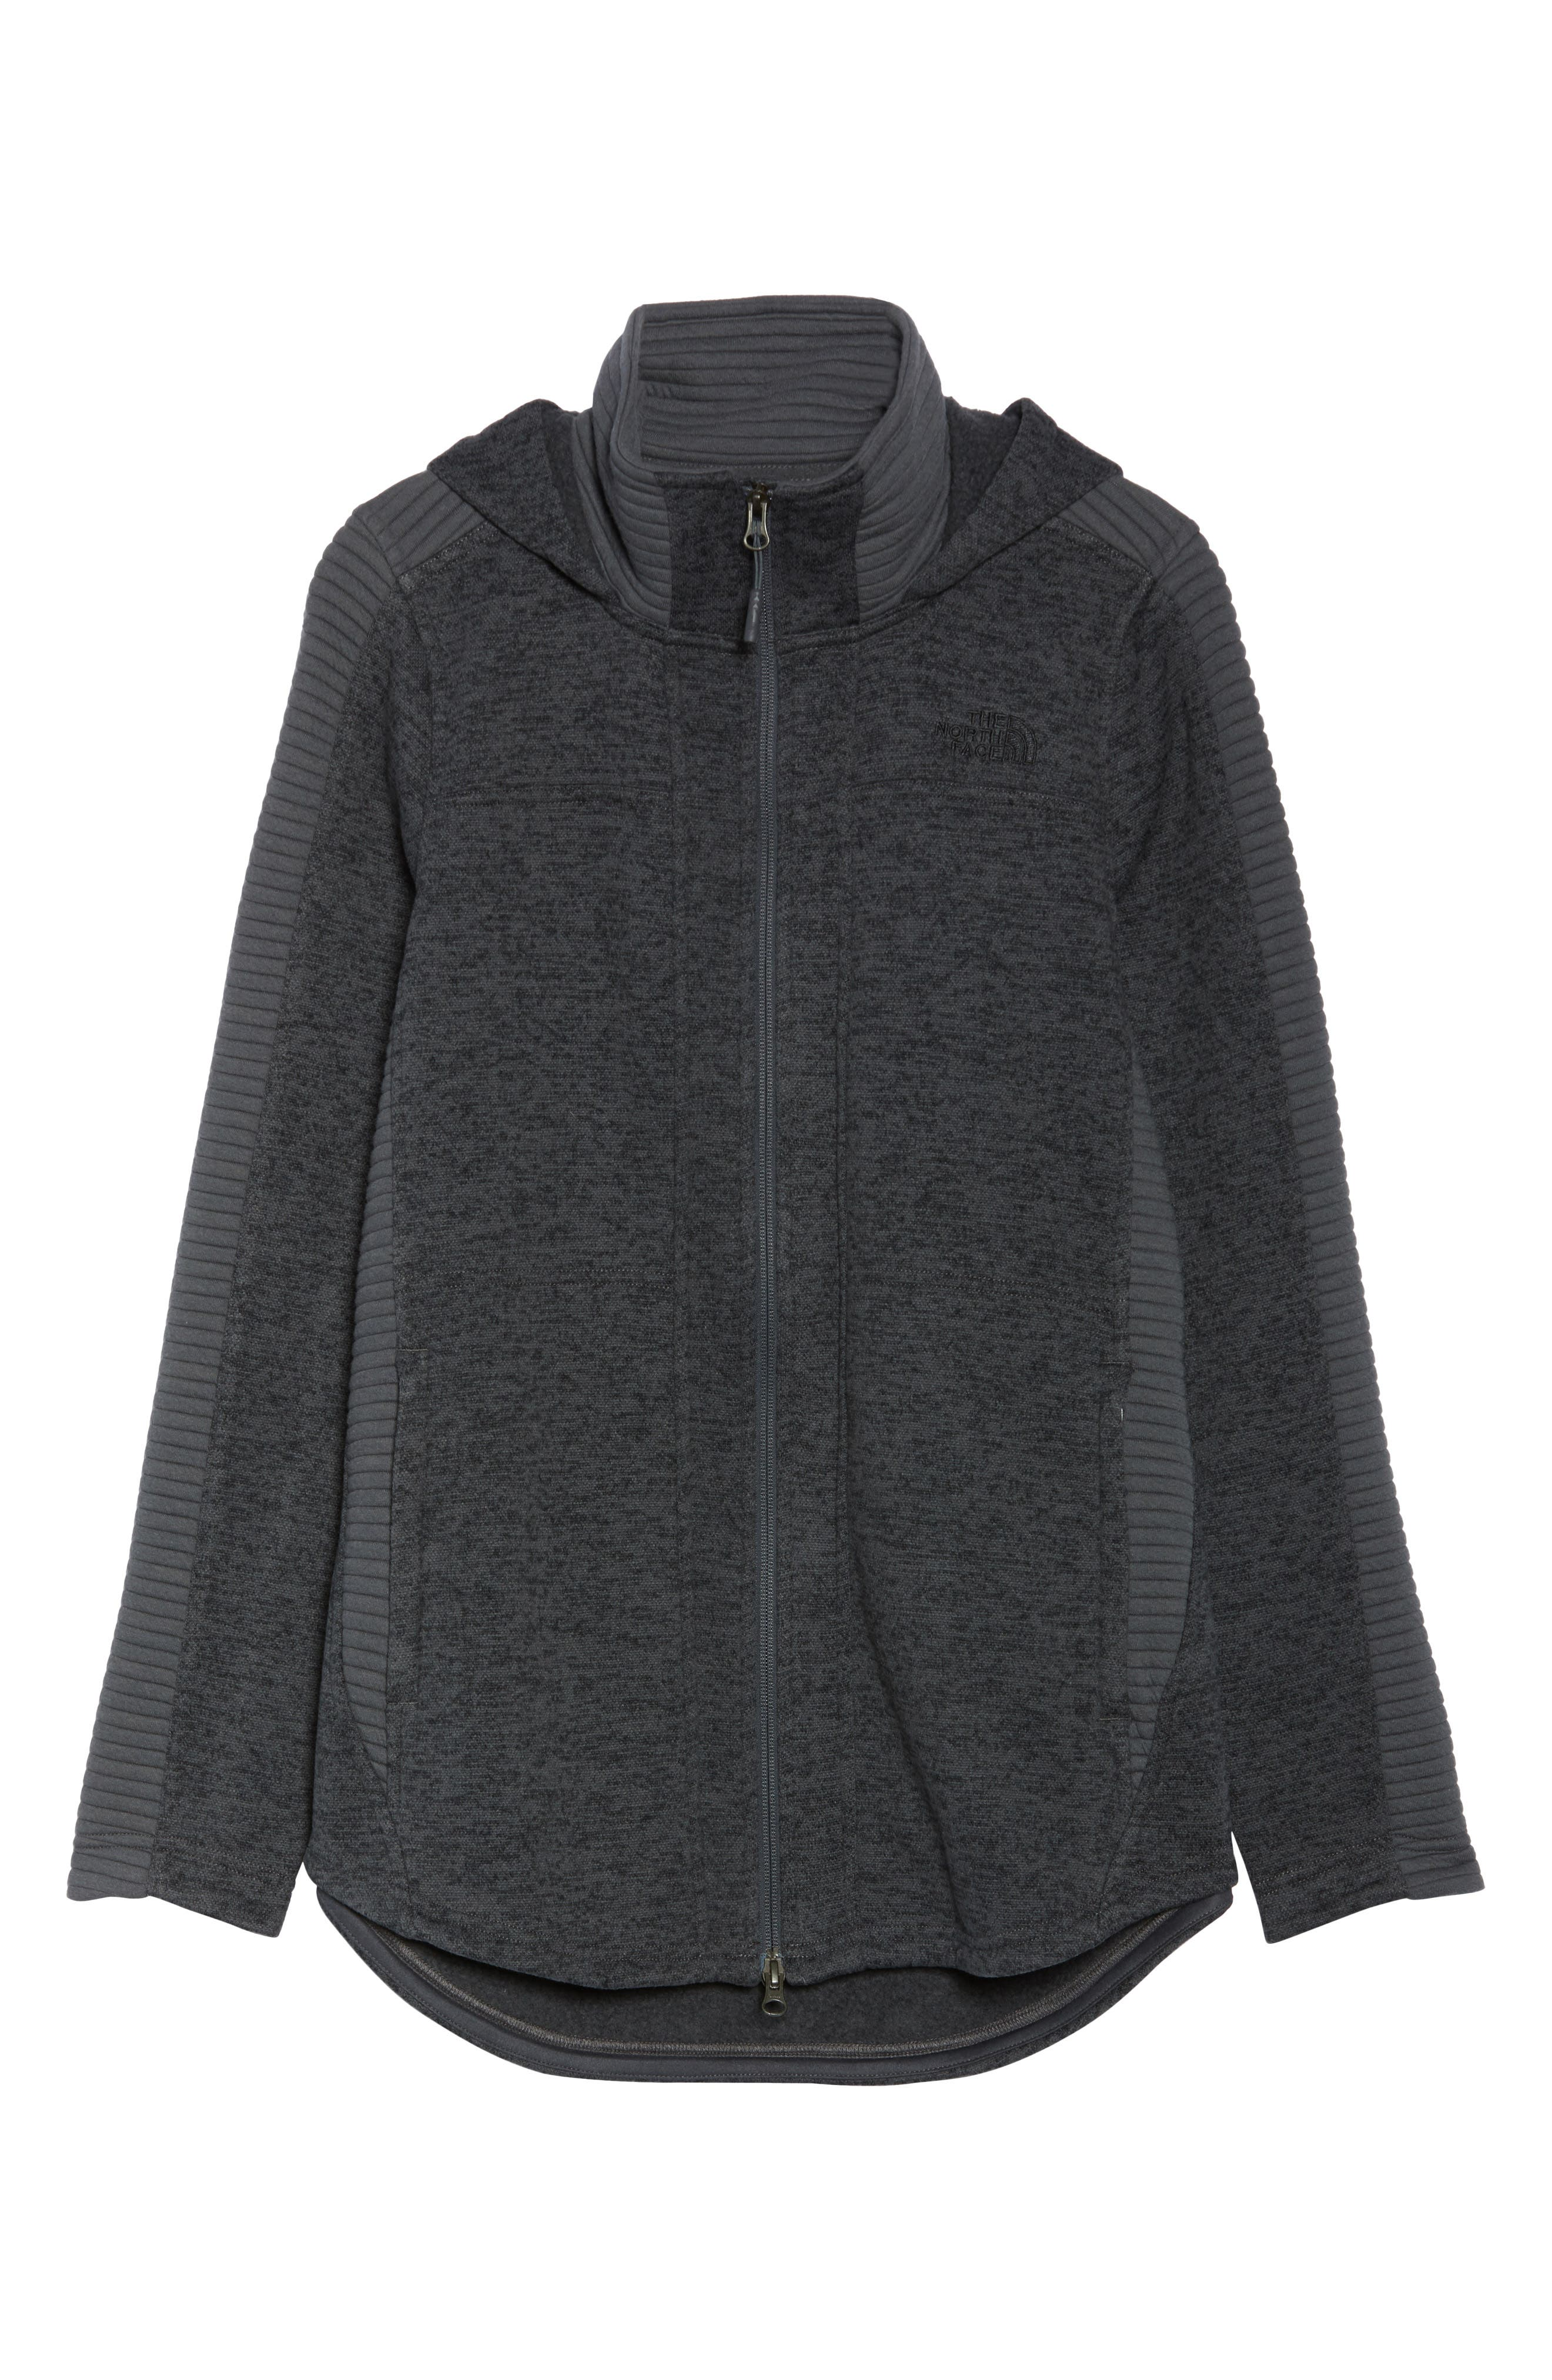 Indi 2 Hooded Knit Parka,                             Alternate thumbnail 7, color,                             Dark Grey Heather